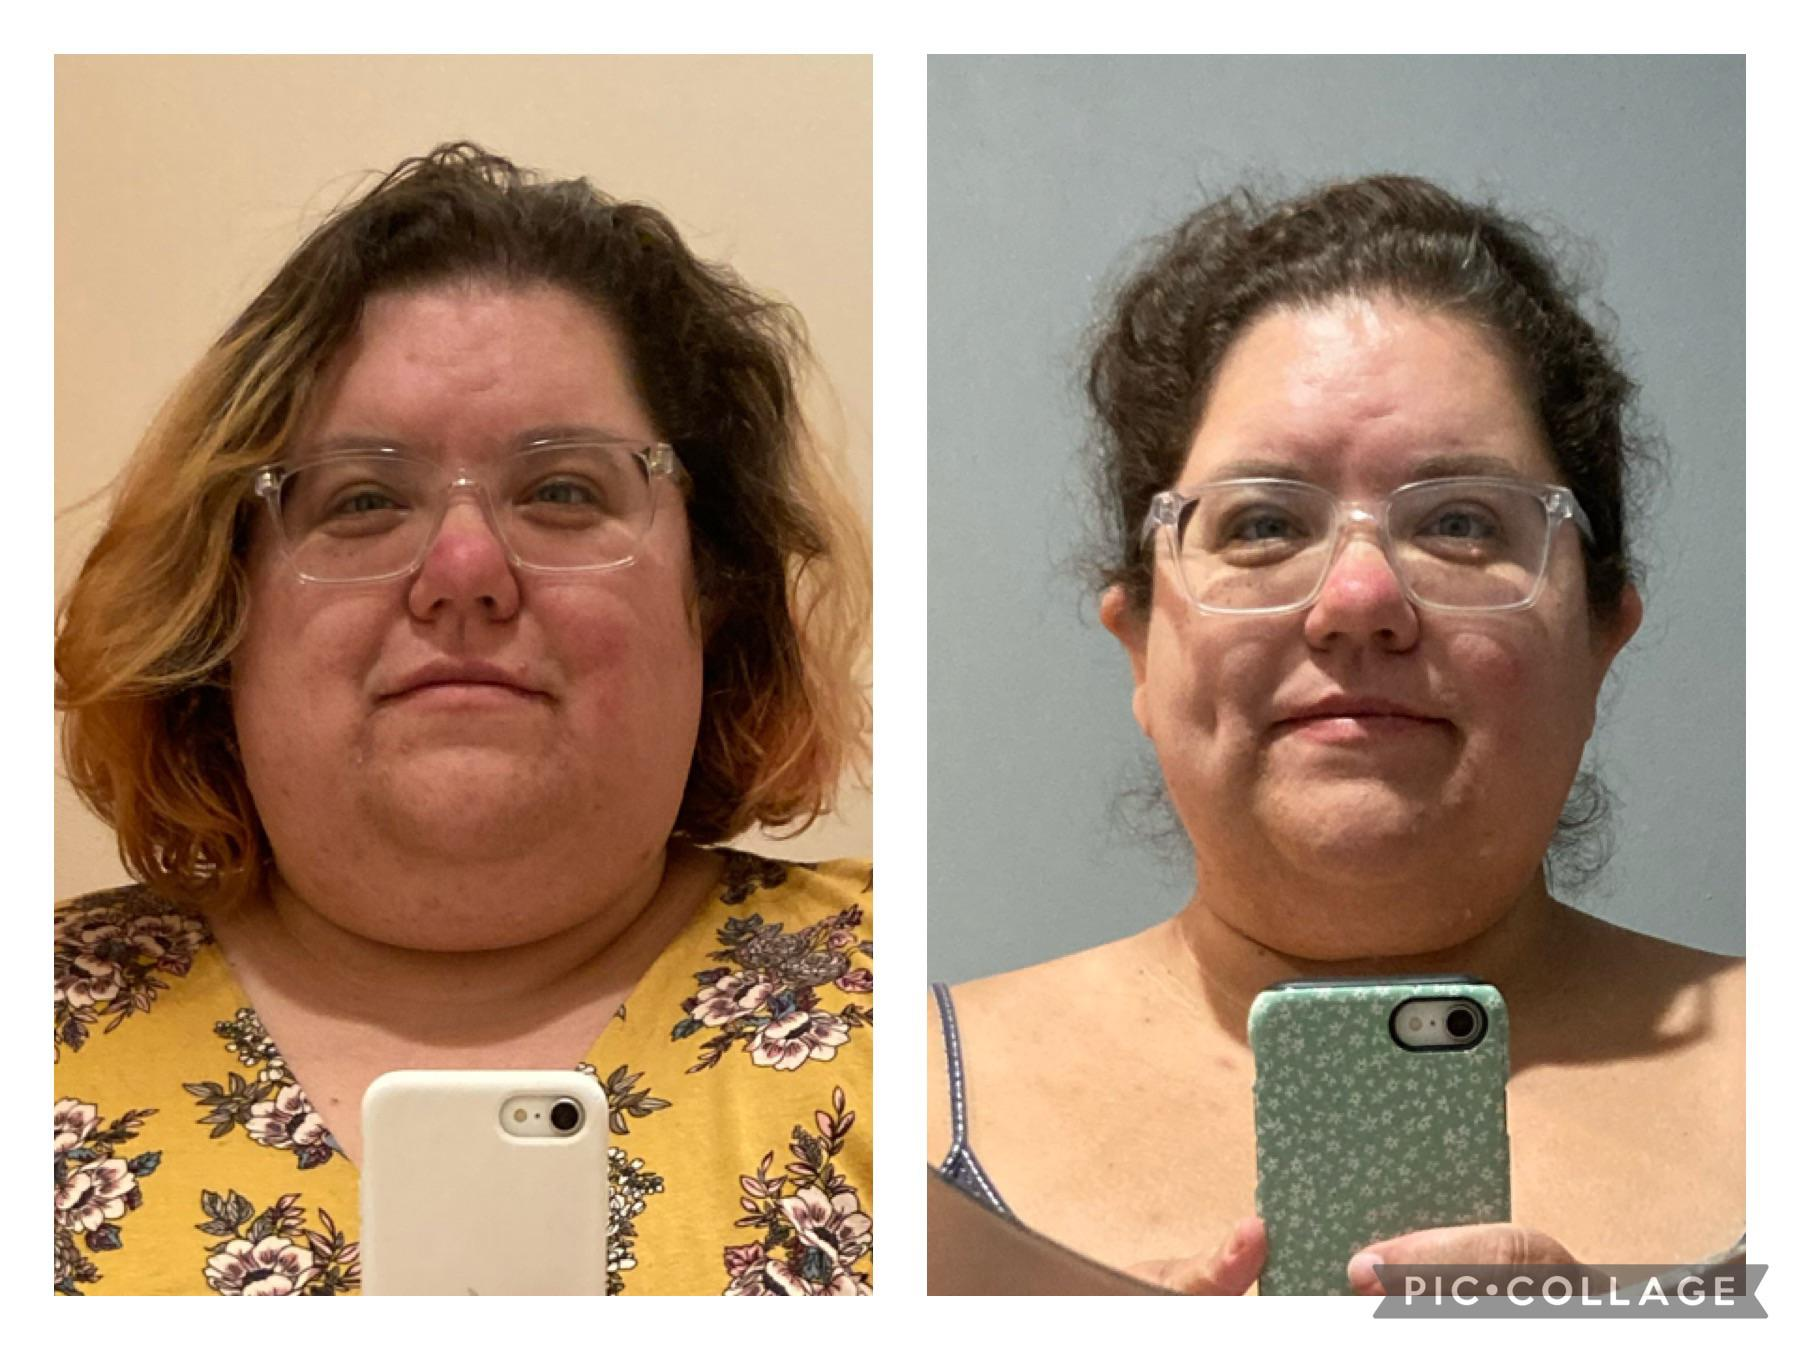 5 feet 3 Female 119 lbs Fat Loss Before and After 430 lbs to 311 lbs